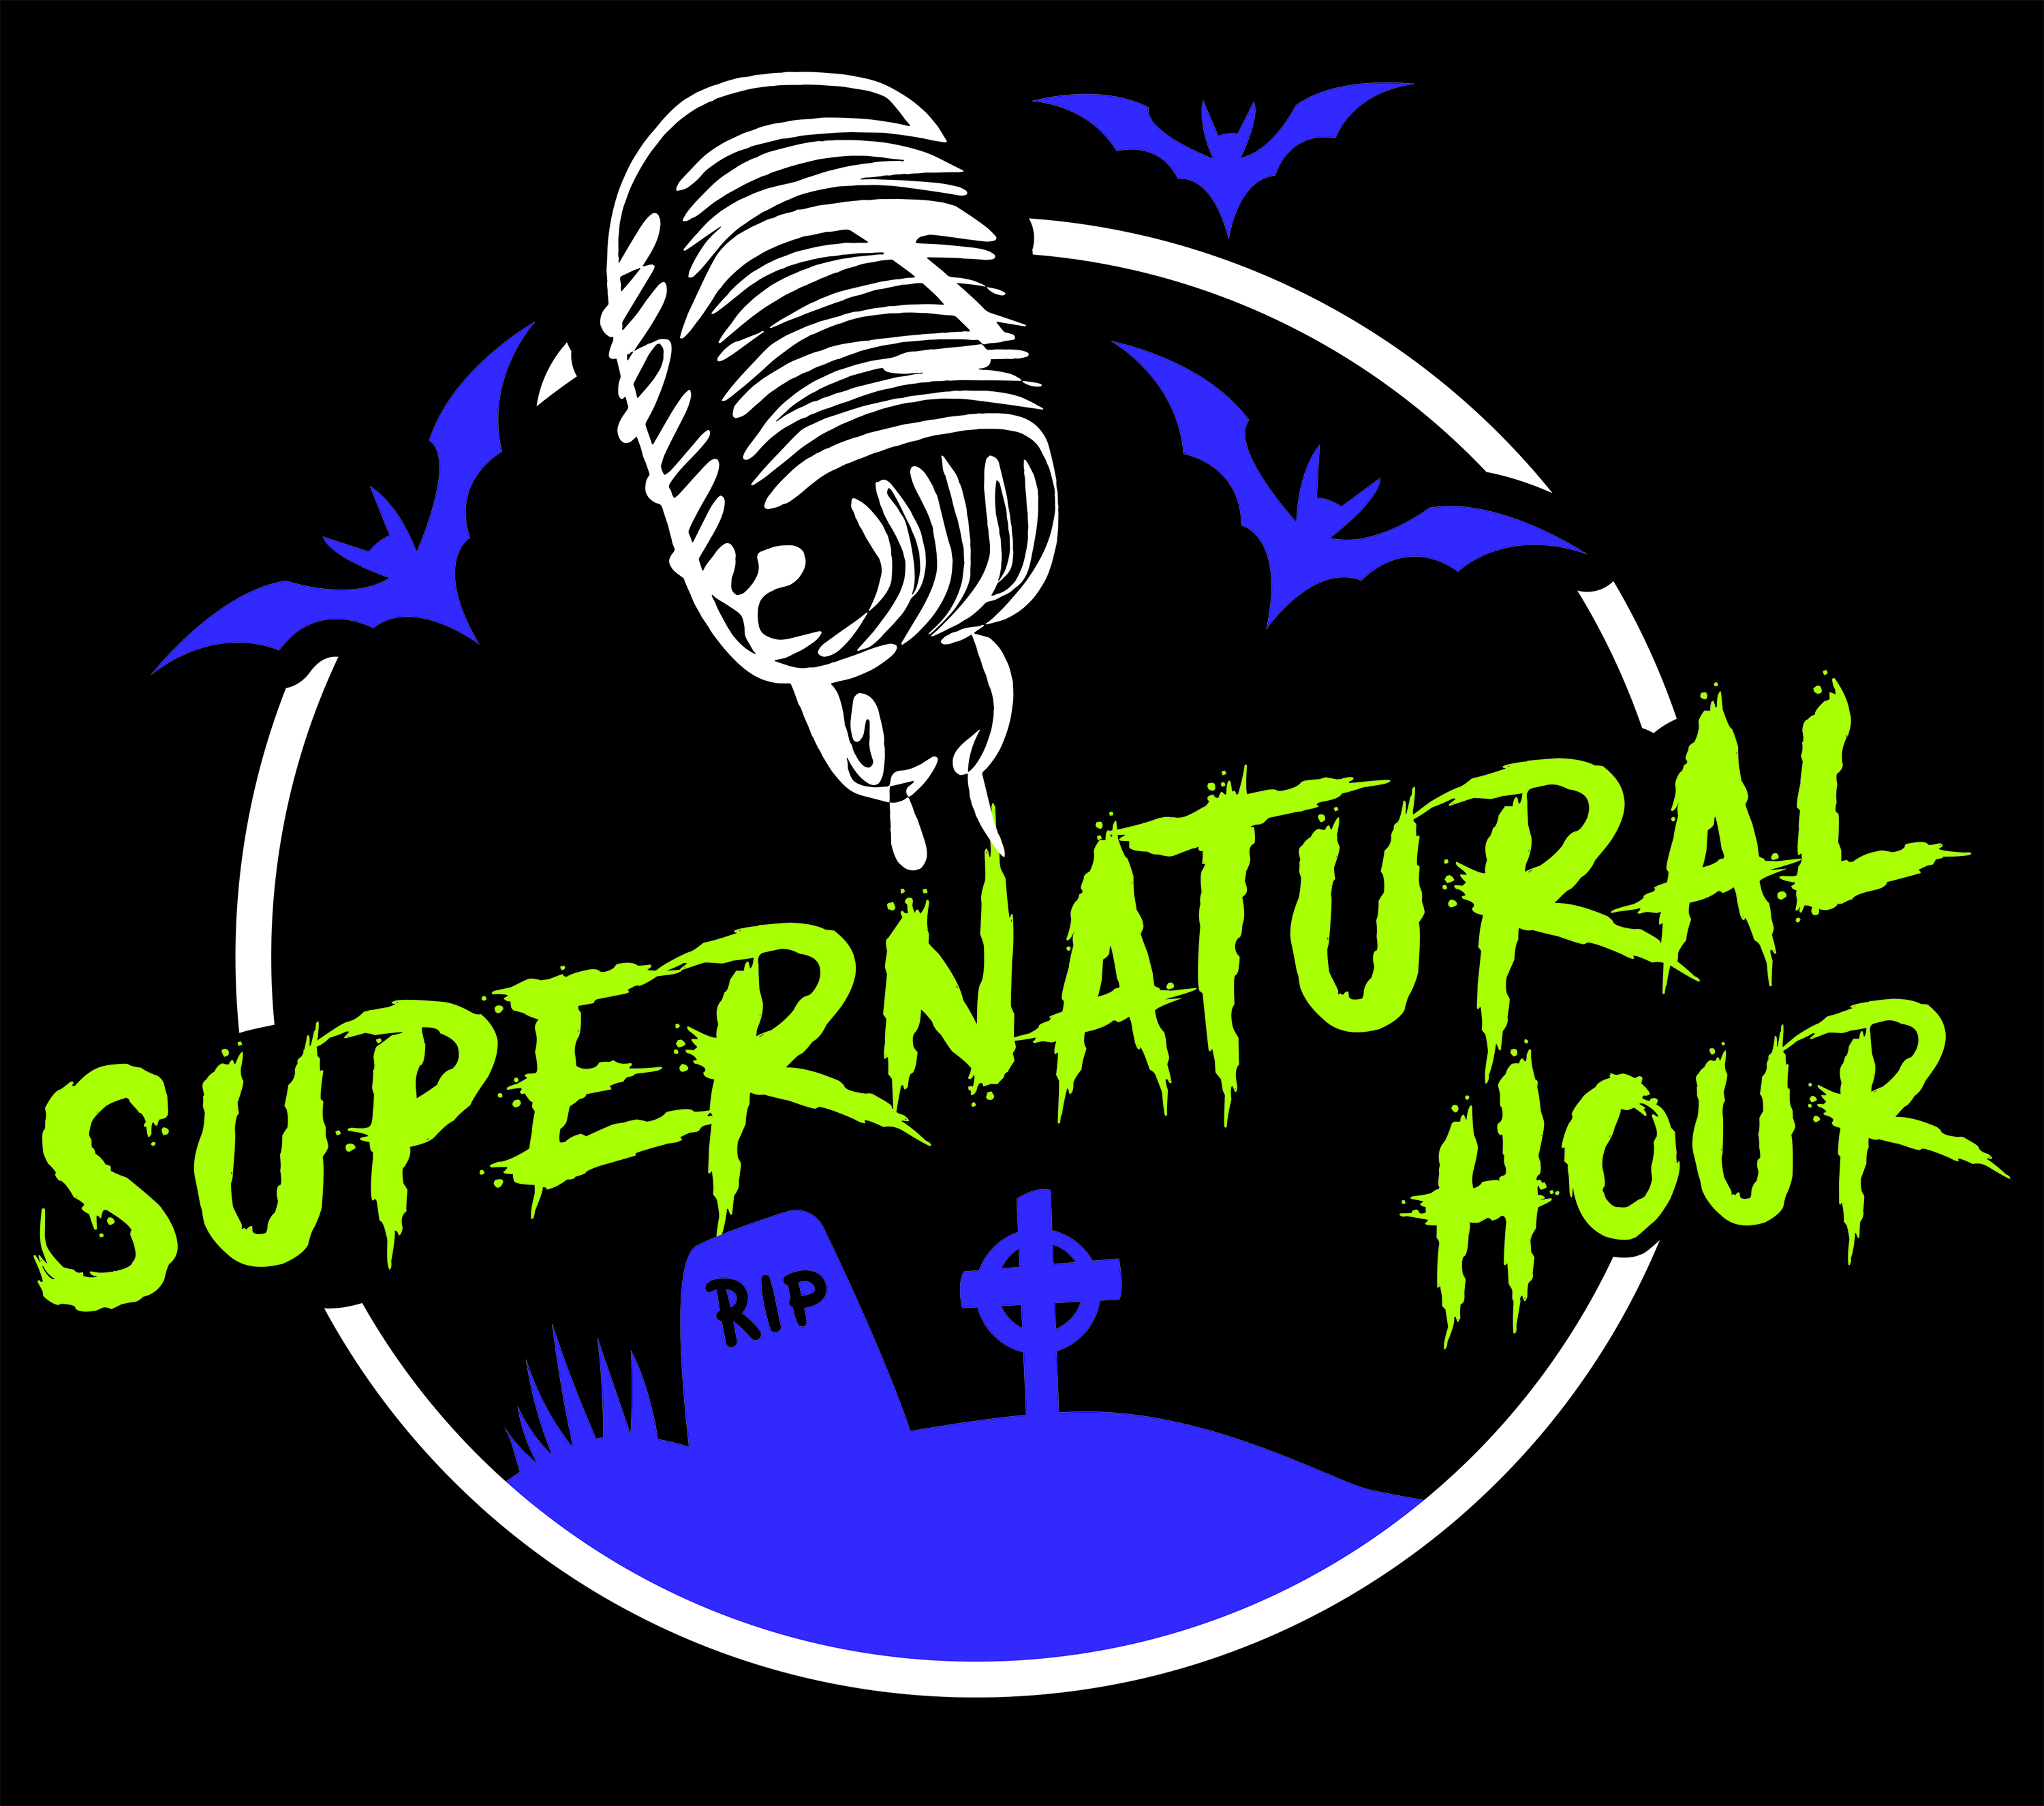 Supernatural Hour